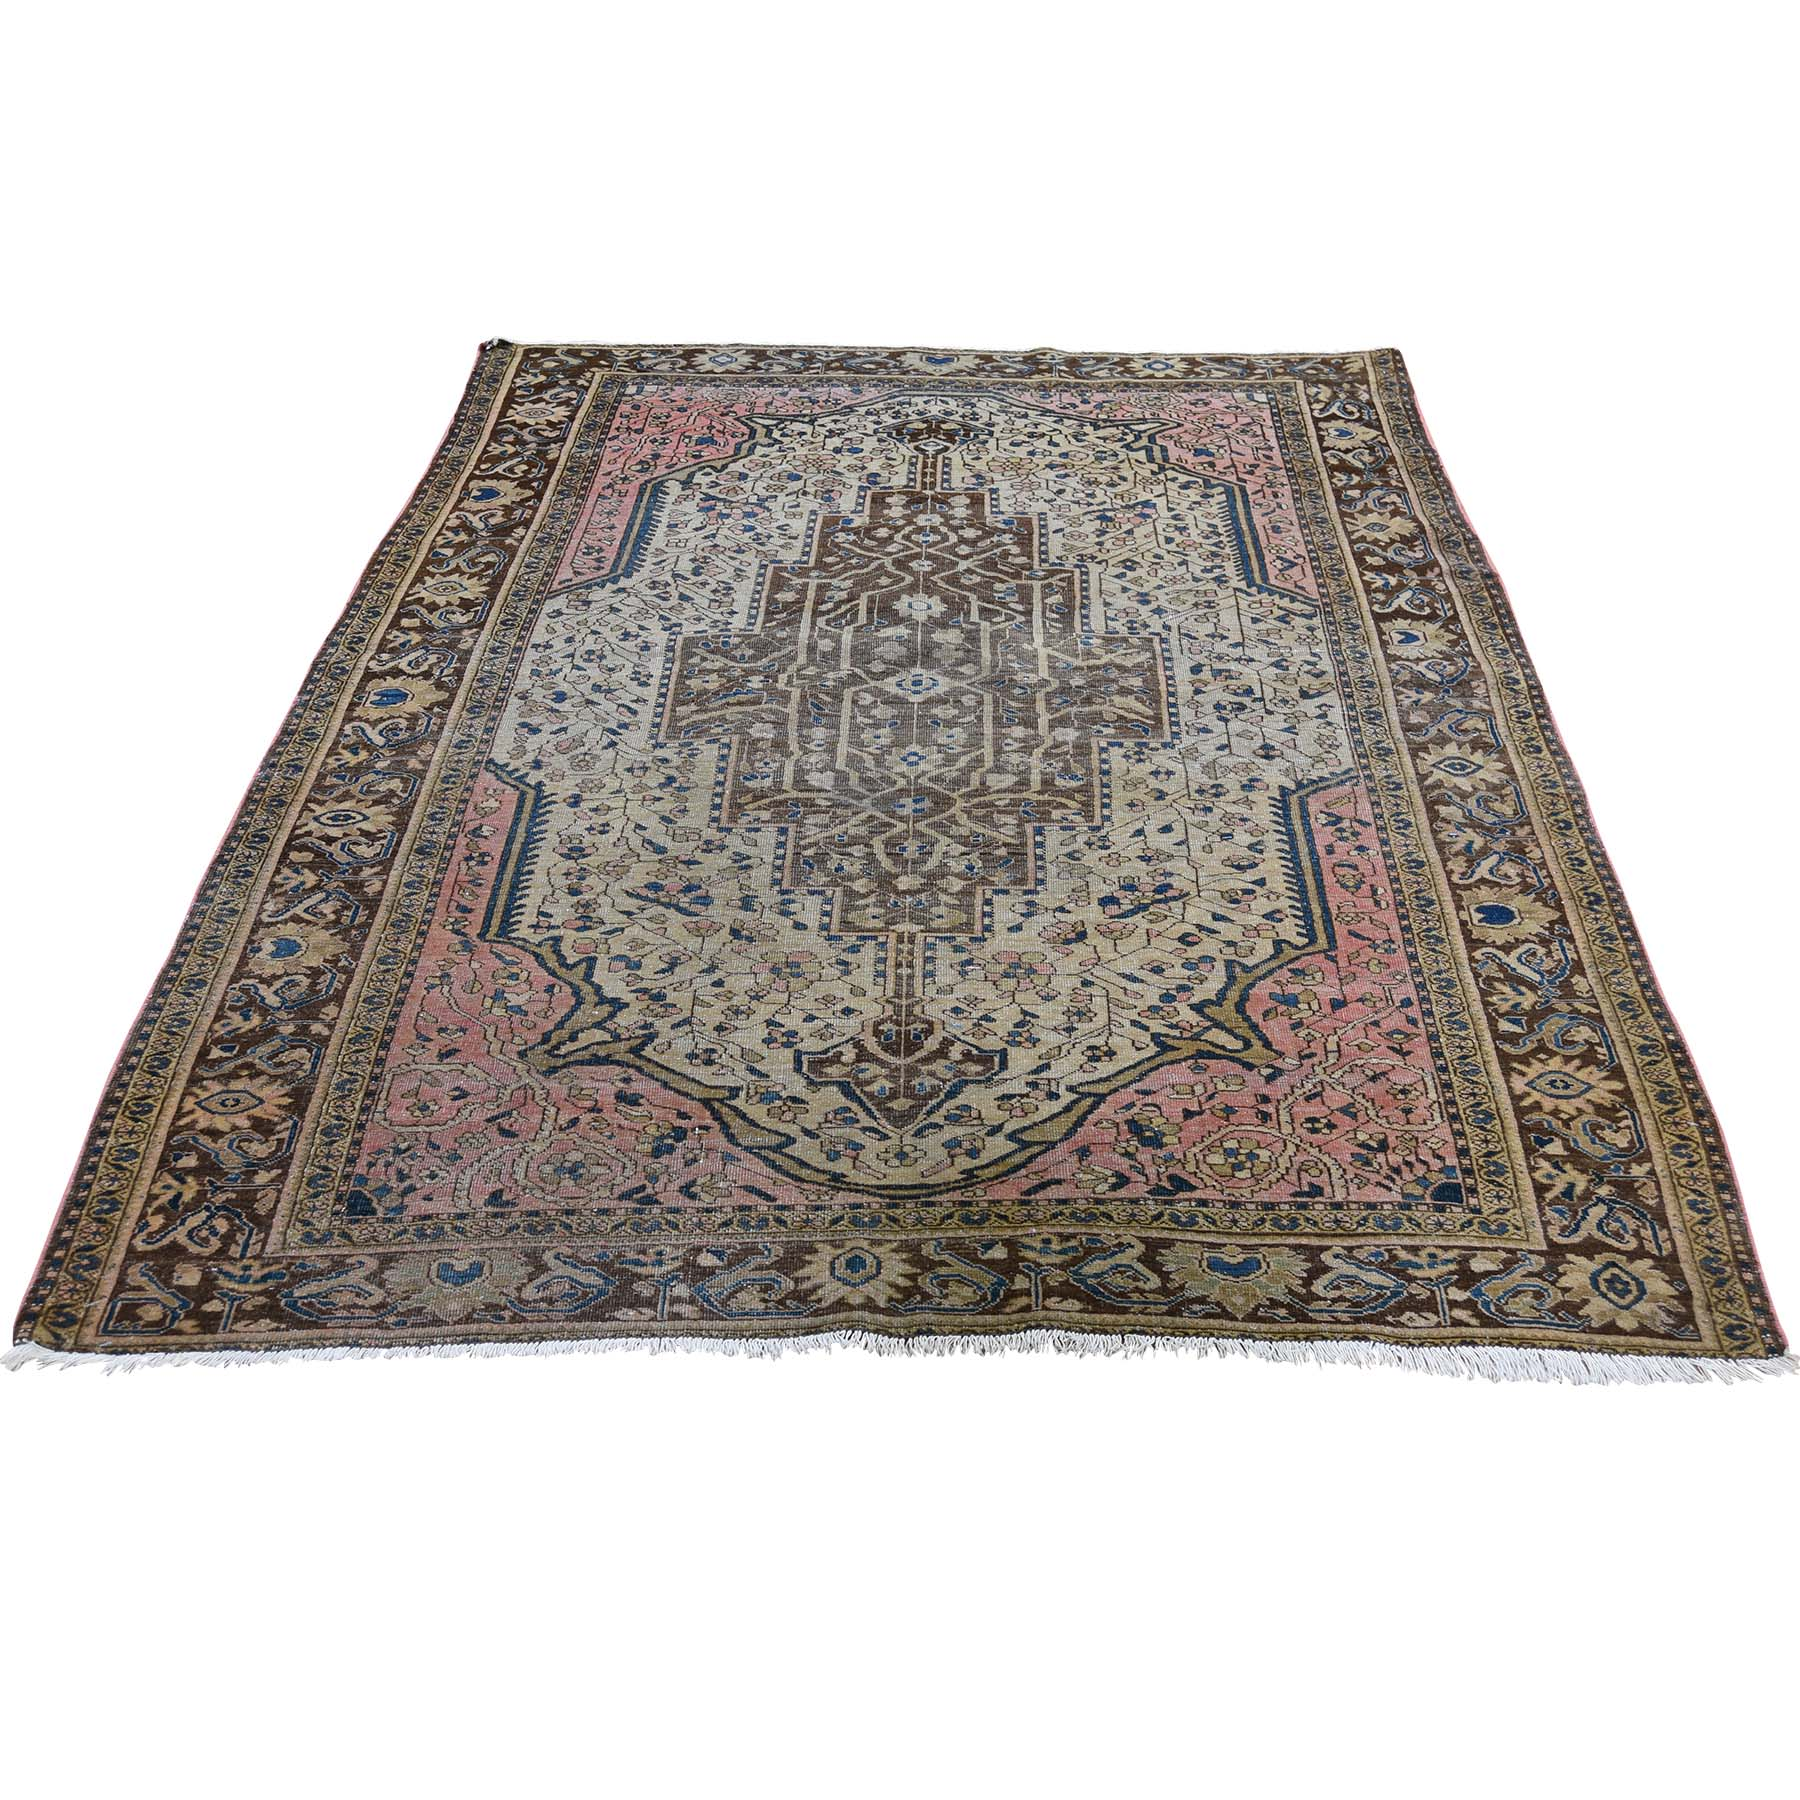 "4'5""X6'6"" Tan Antique Persian Sarouk Fereghan Even Wear Hand-Knotted Oriental Rug moade9a8"